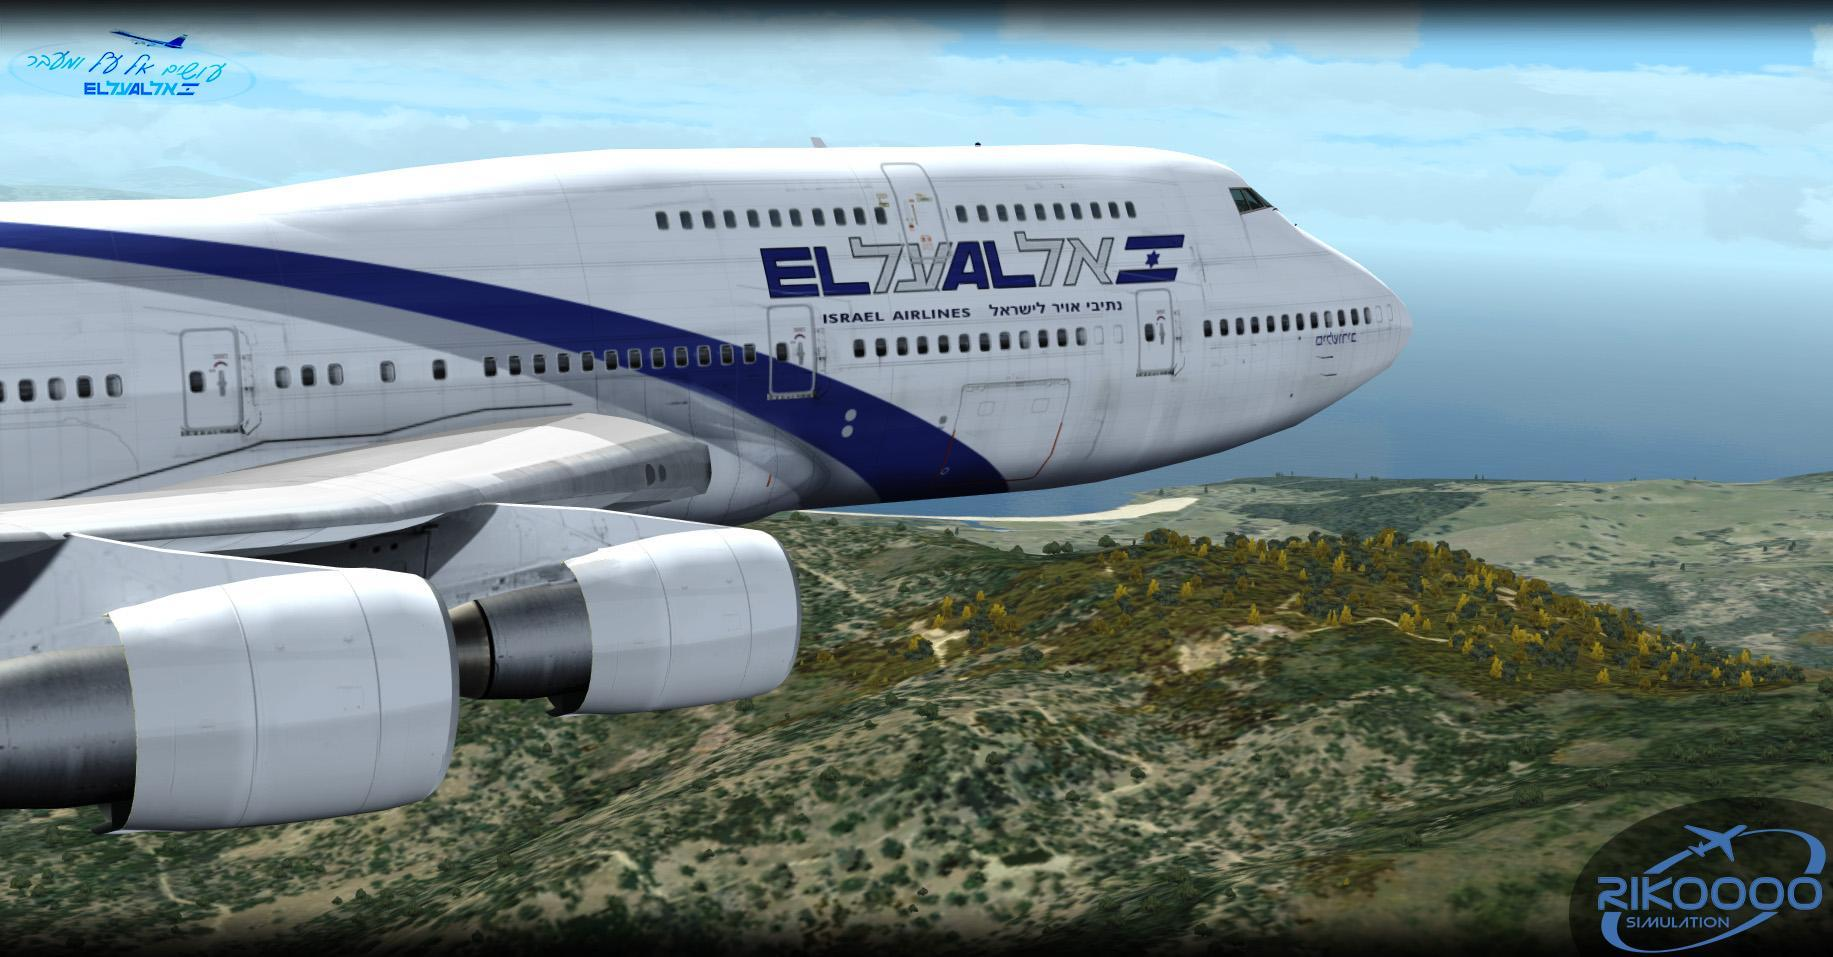 DOWNLOAD Fleet El Al Israel Airlines v1.0 FSX & P3D - Rikoooo